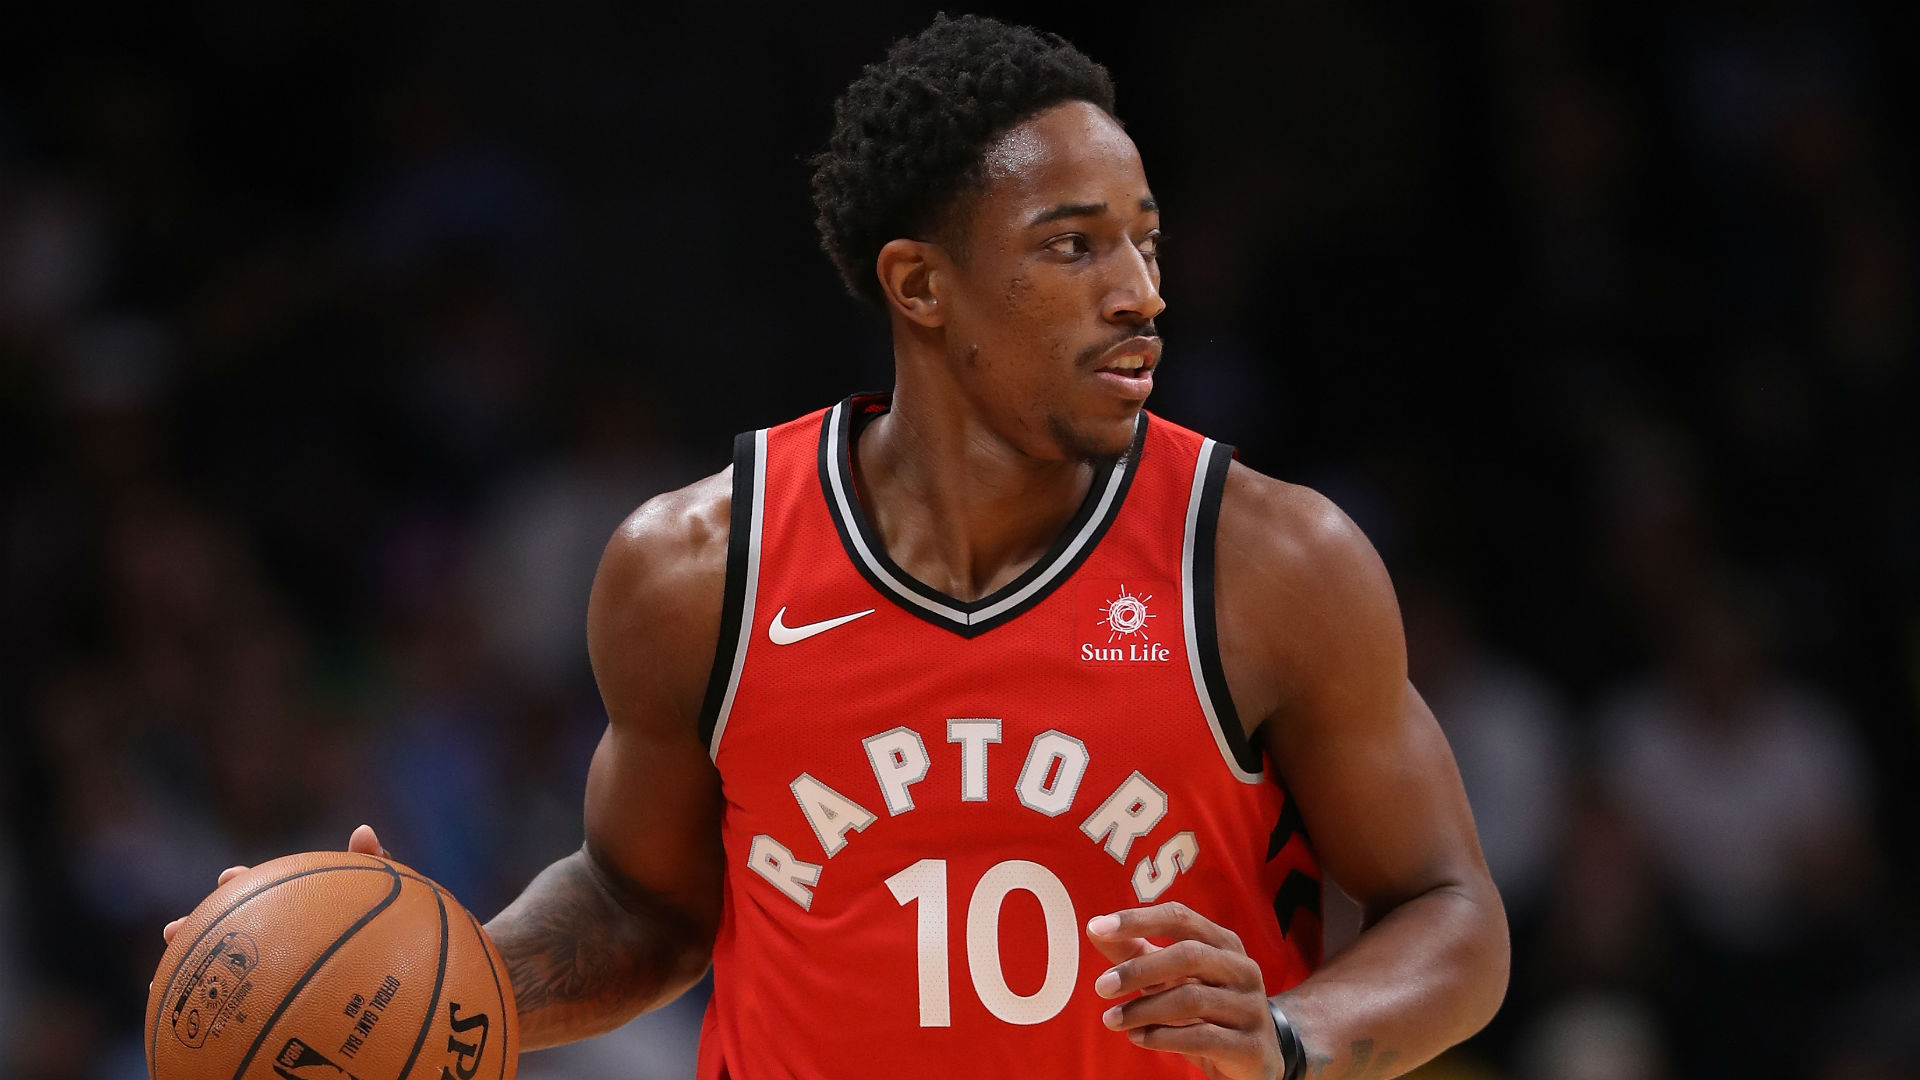 Raptors come alive in 4th quarter for Game 1 victory over Wizards